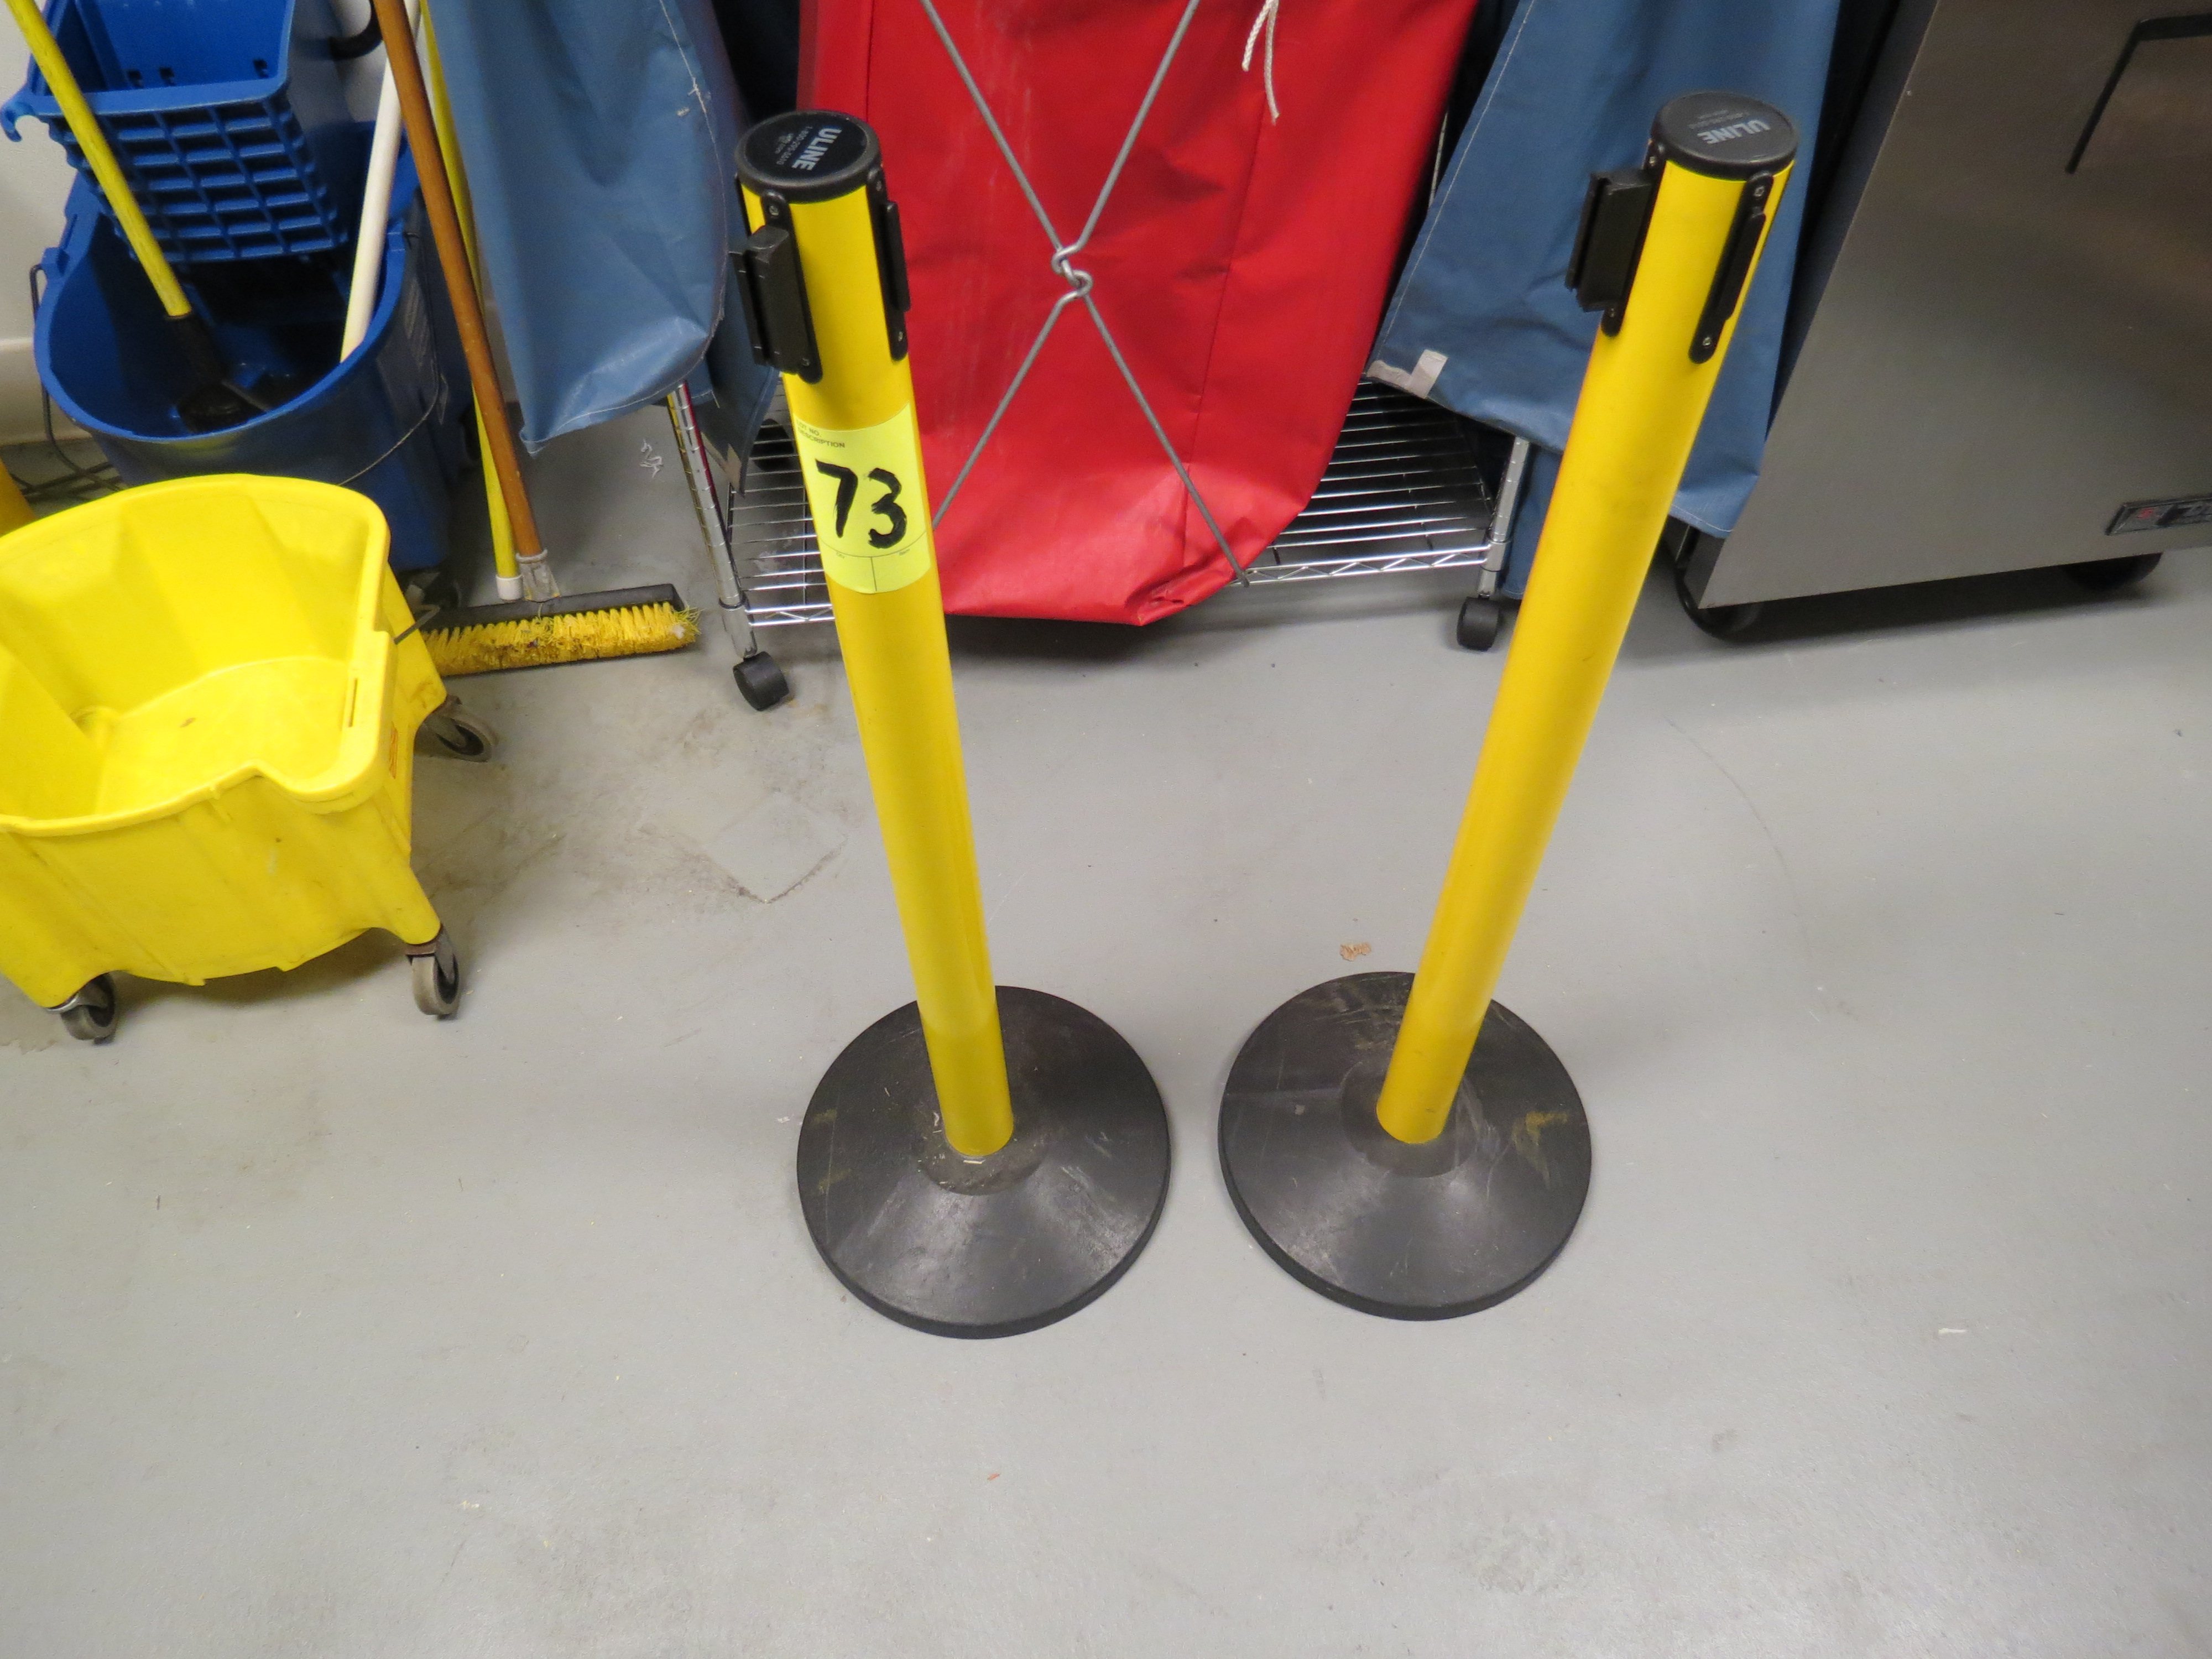 Lot 73 - ULINE CROWD CONTROL BARRIER POSTS WITH RETRACTABLE BELT